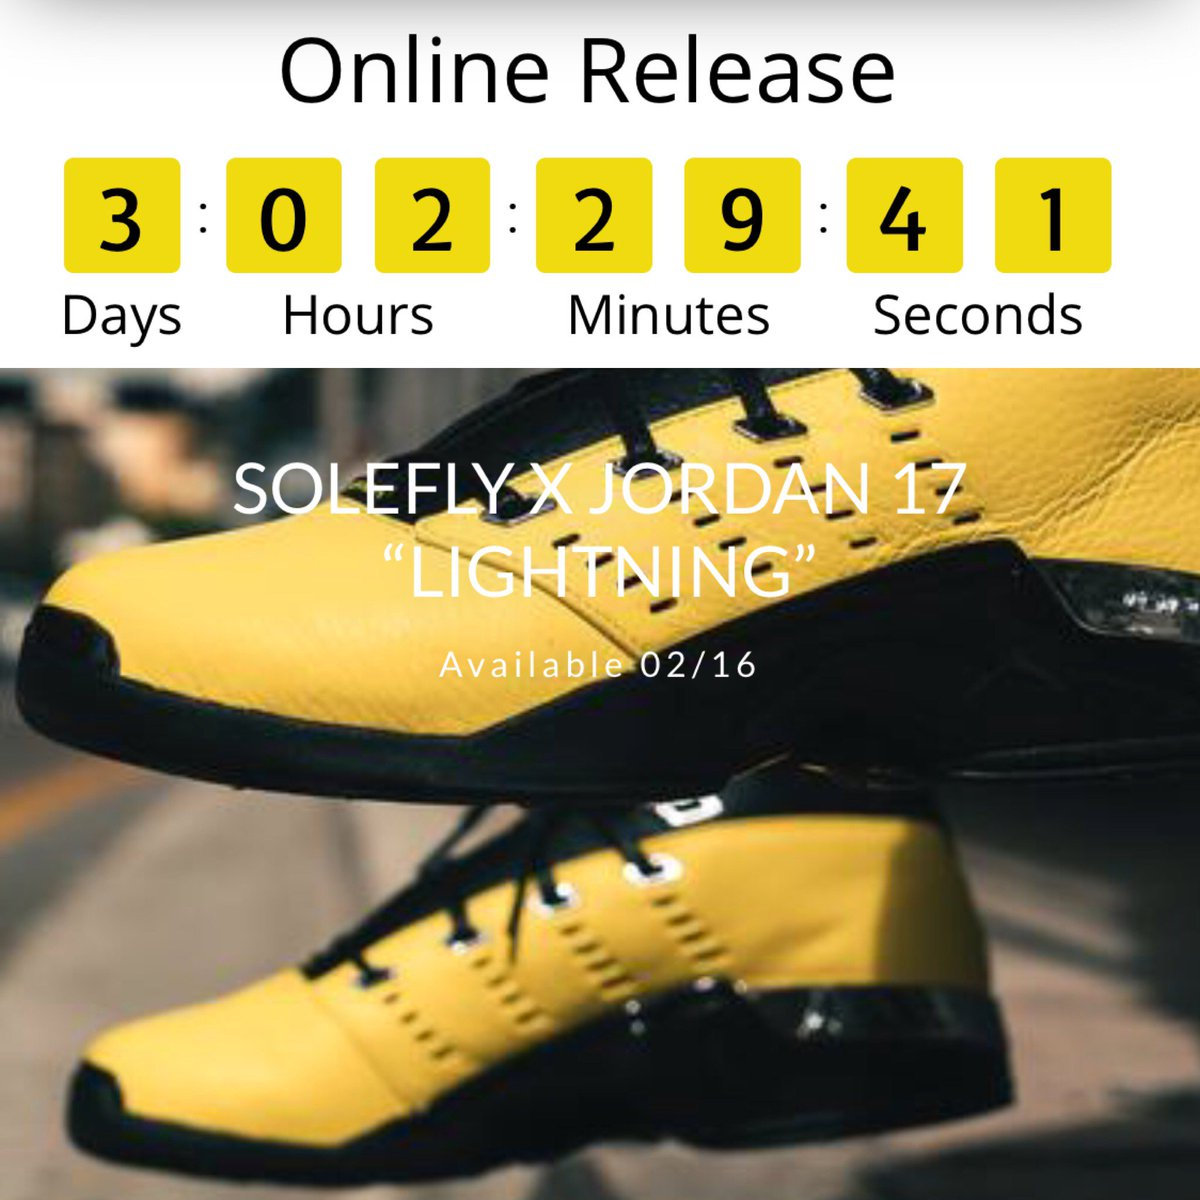 a037283a SOLEFLY x Jordan 17 Low releasing online at http://SoleFly.com February  16th Limited to 2,300 pairs. Individually numbered.pic.twitter .com/VCNpqKEUXz